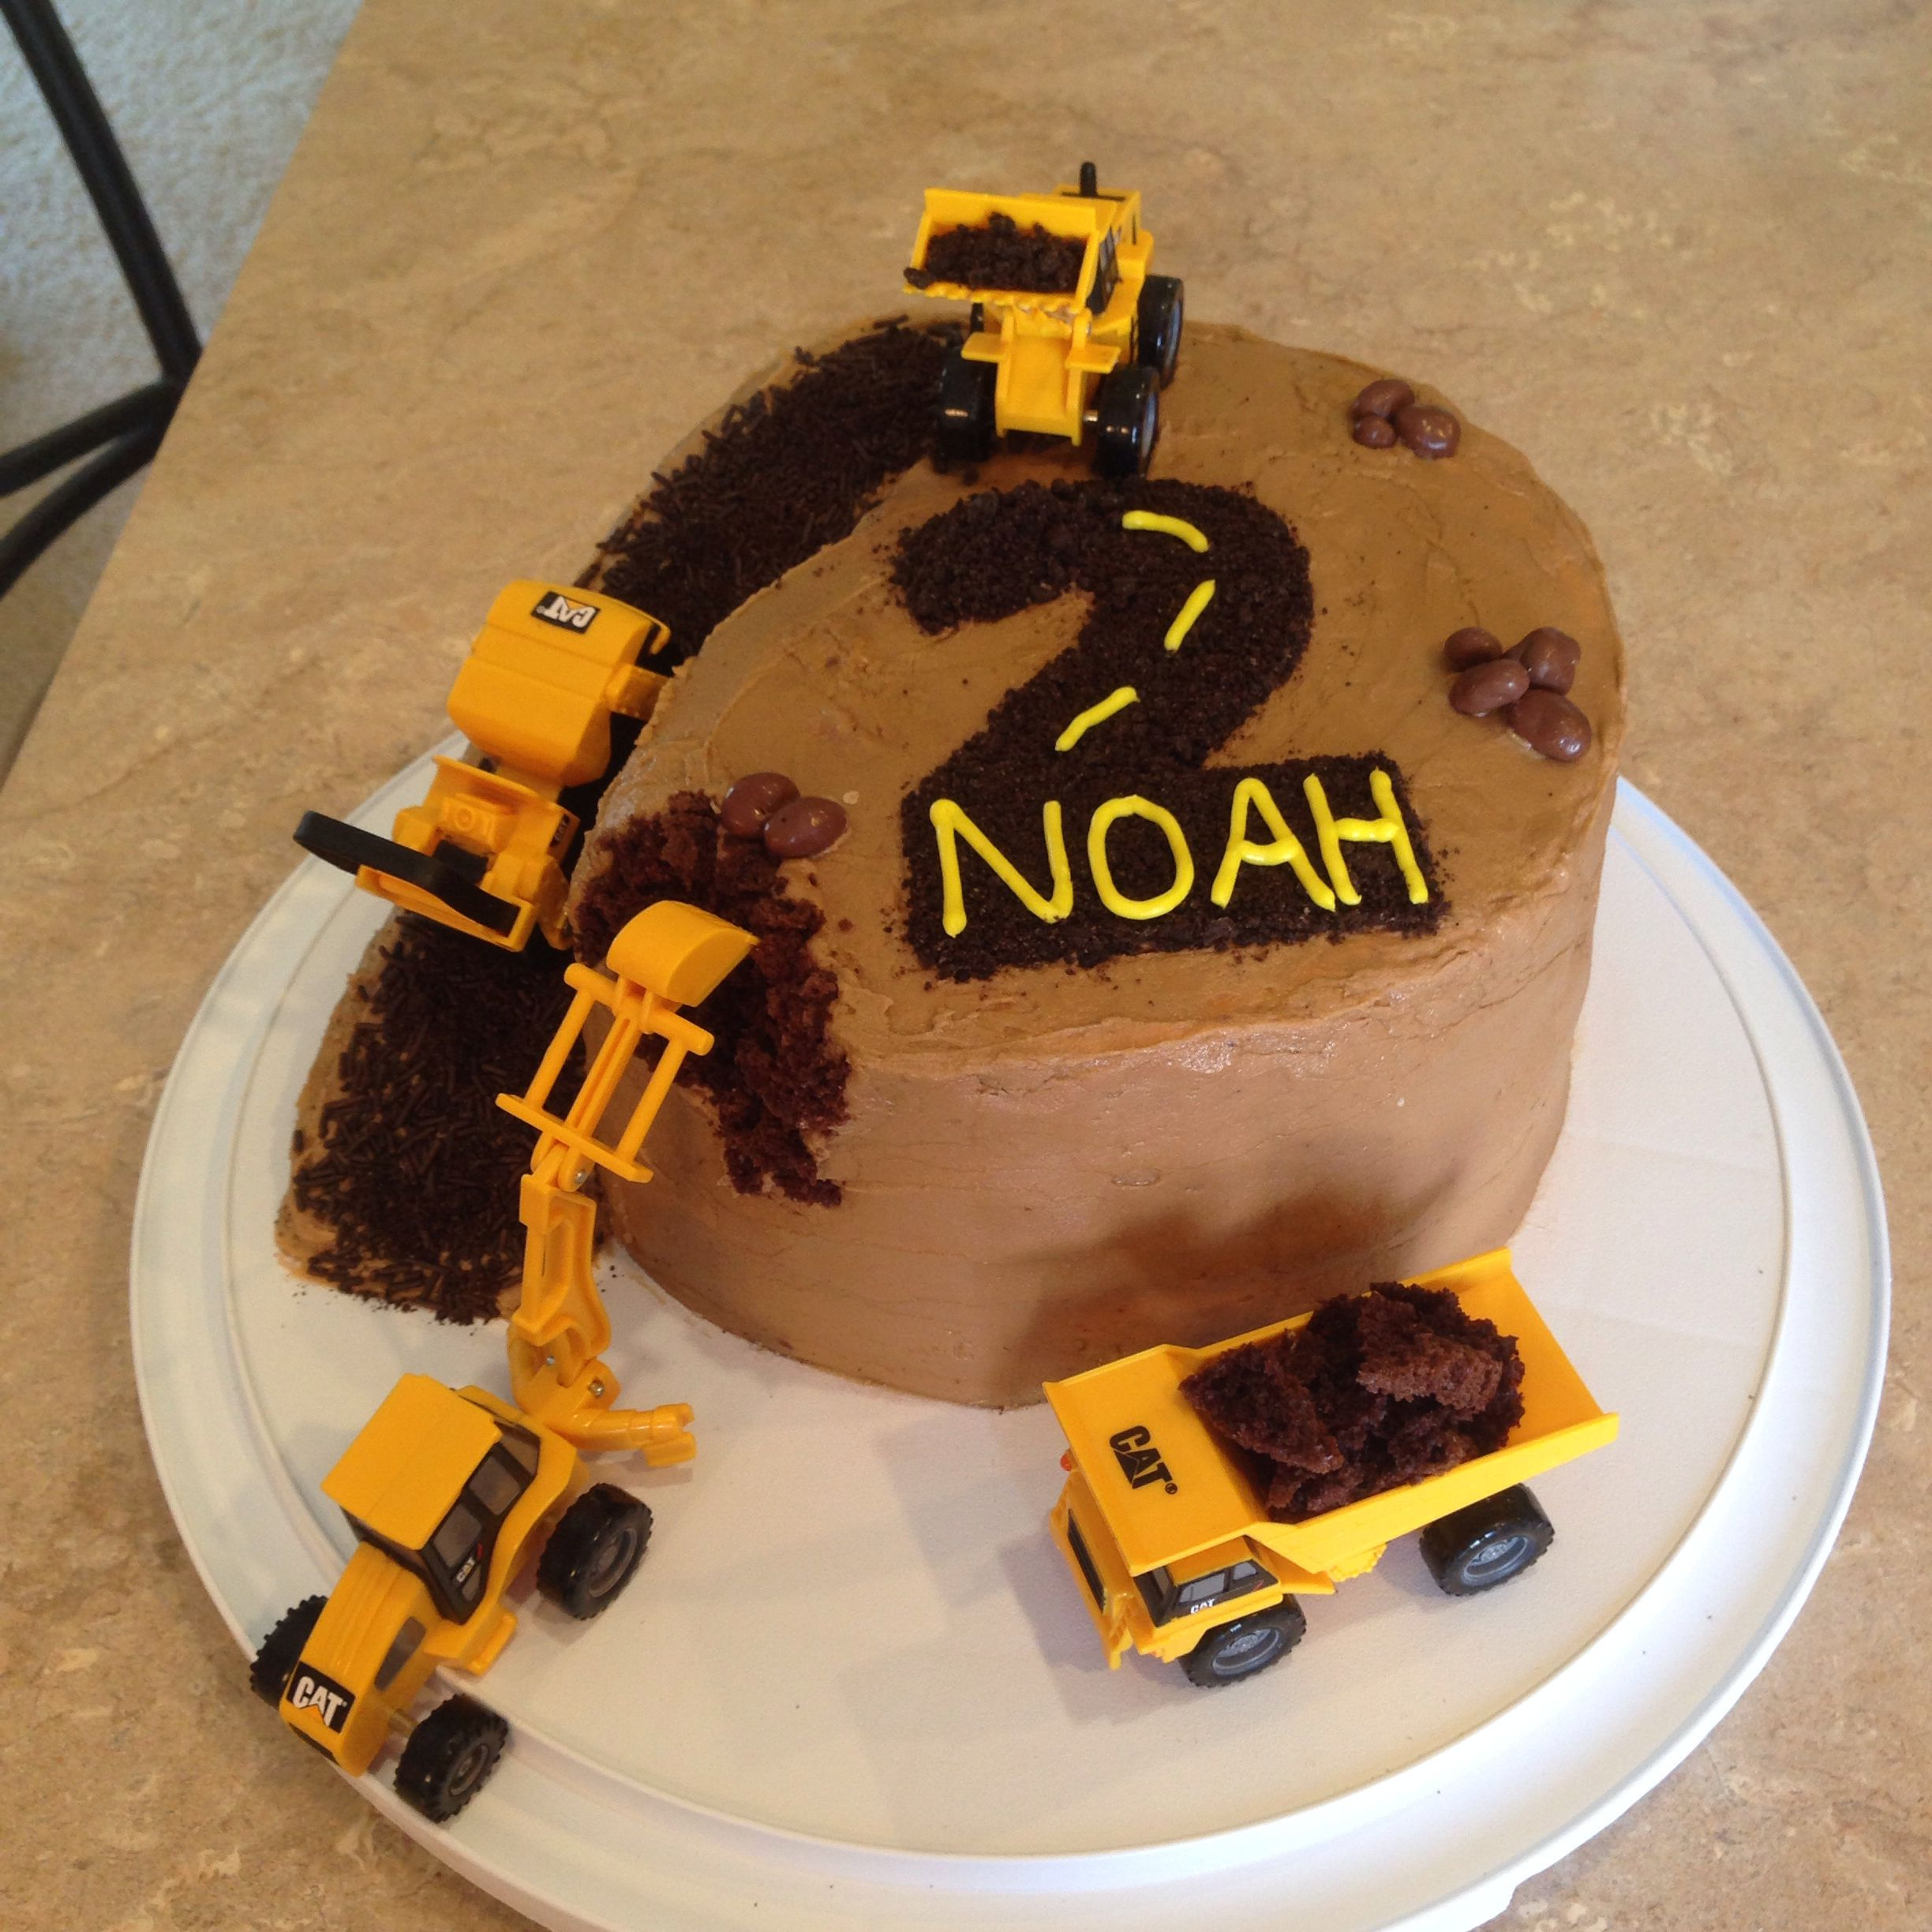 Construction Cake For My 2 Year Old Boy He Loves Trucks